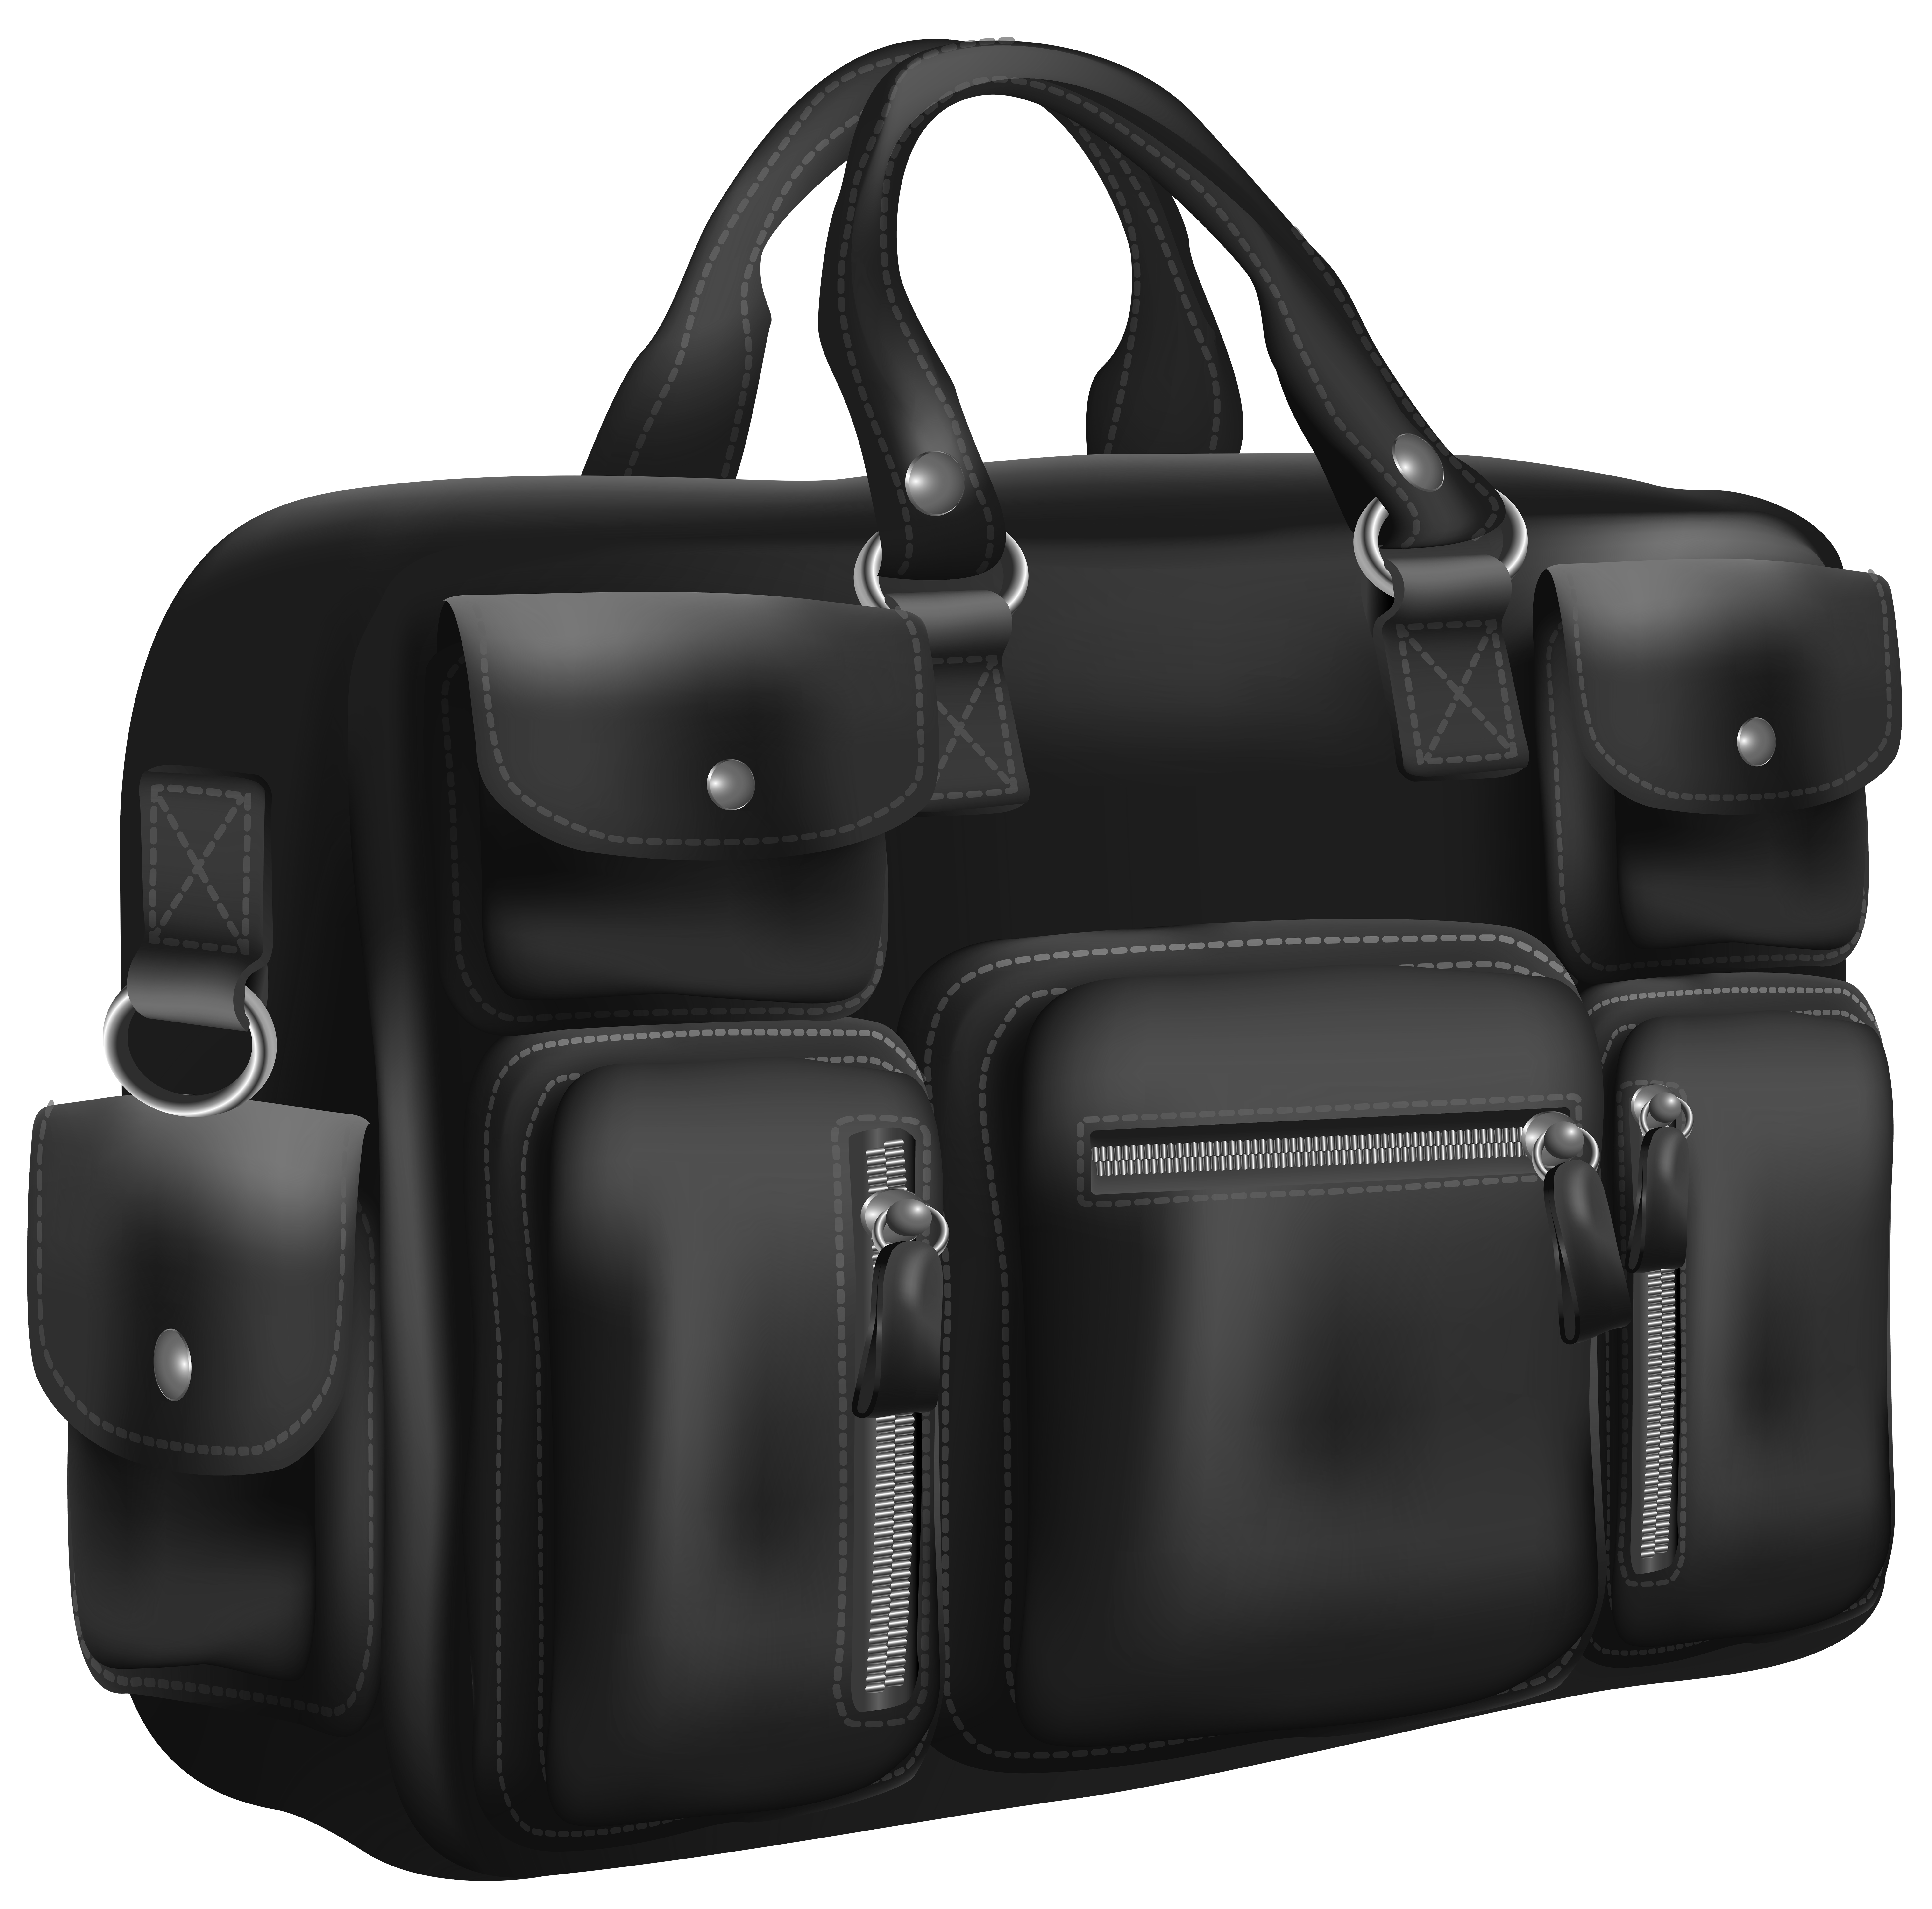 Briefcase full of money clipart png freeuse stock Bag PNG Clip Art - Best WEB Clipart png freeuse stock